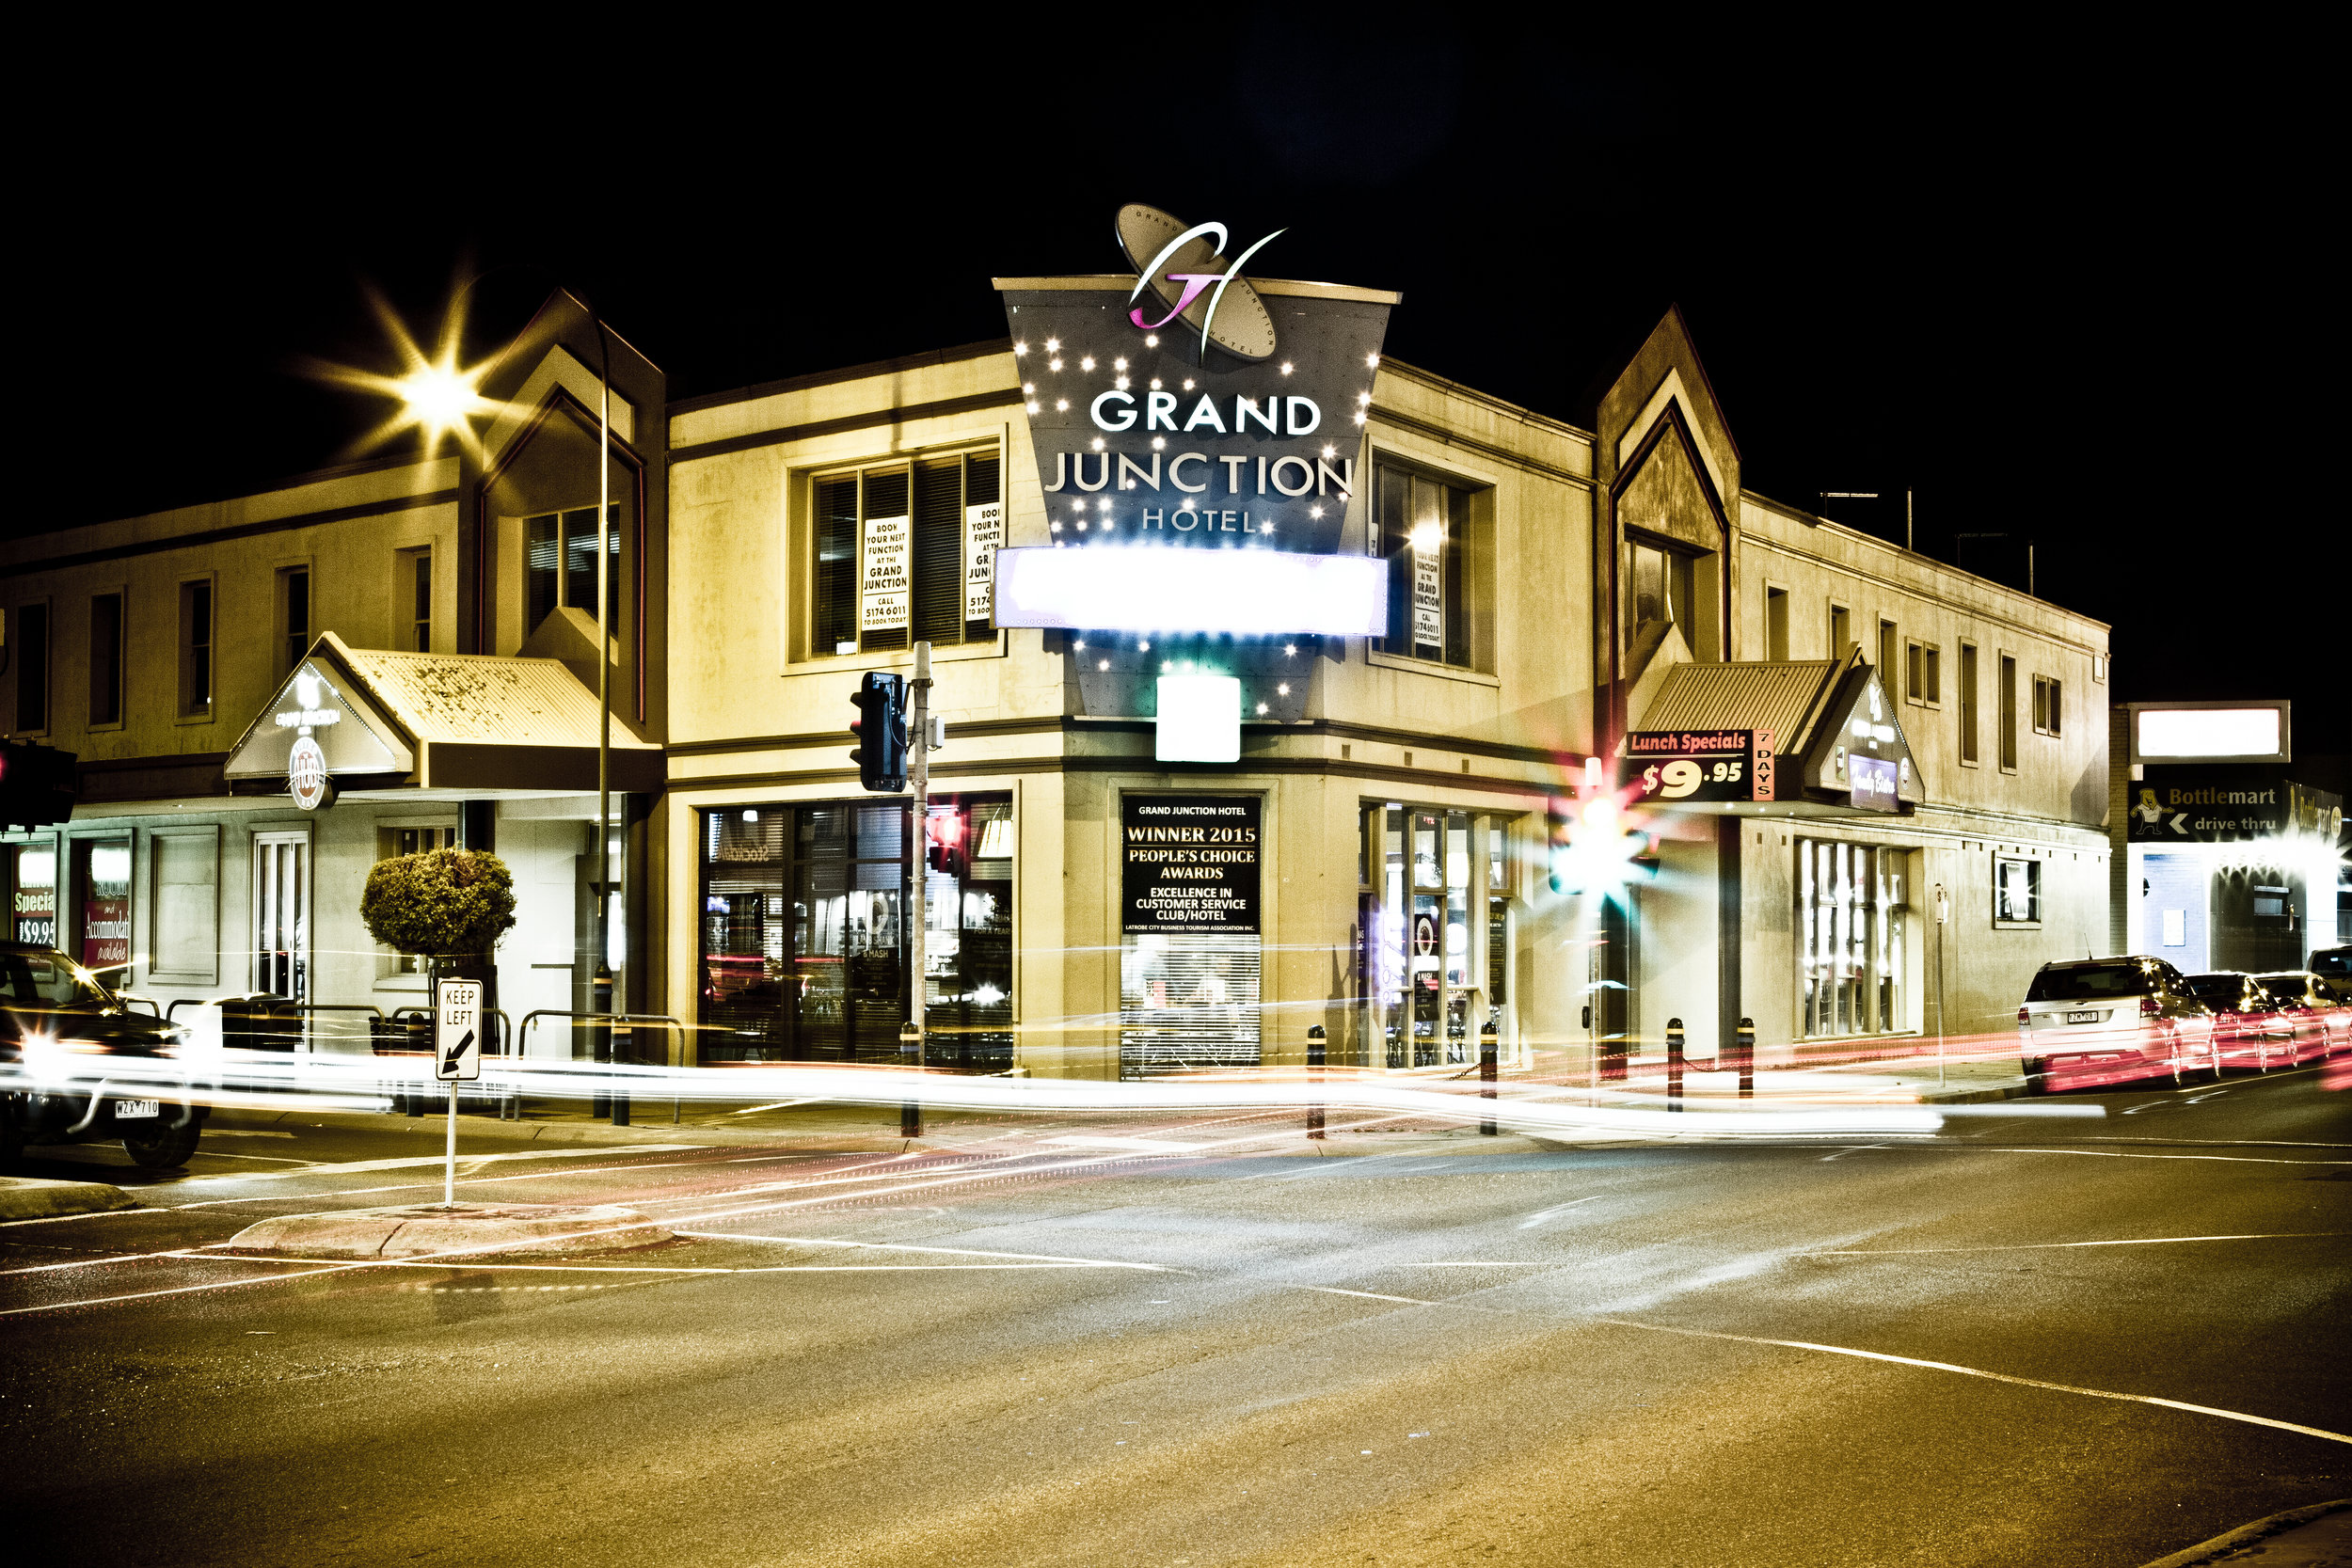 Grand Junction Hotel Traralgon